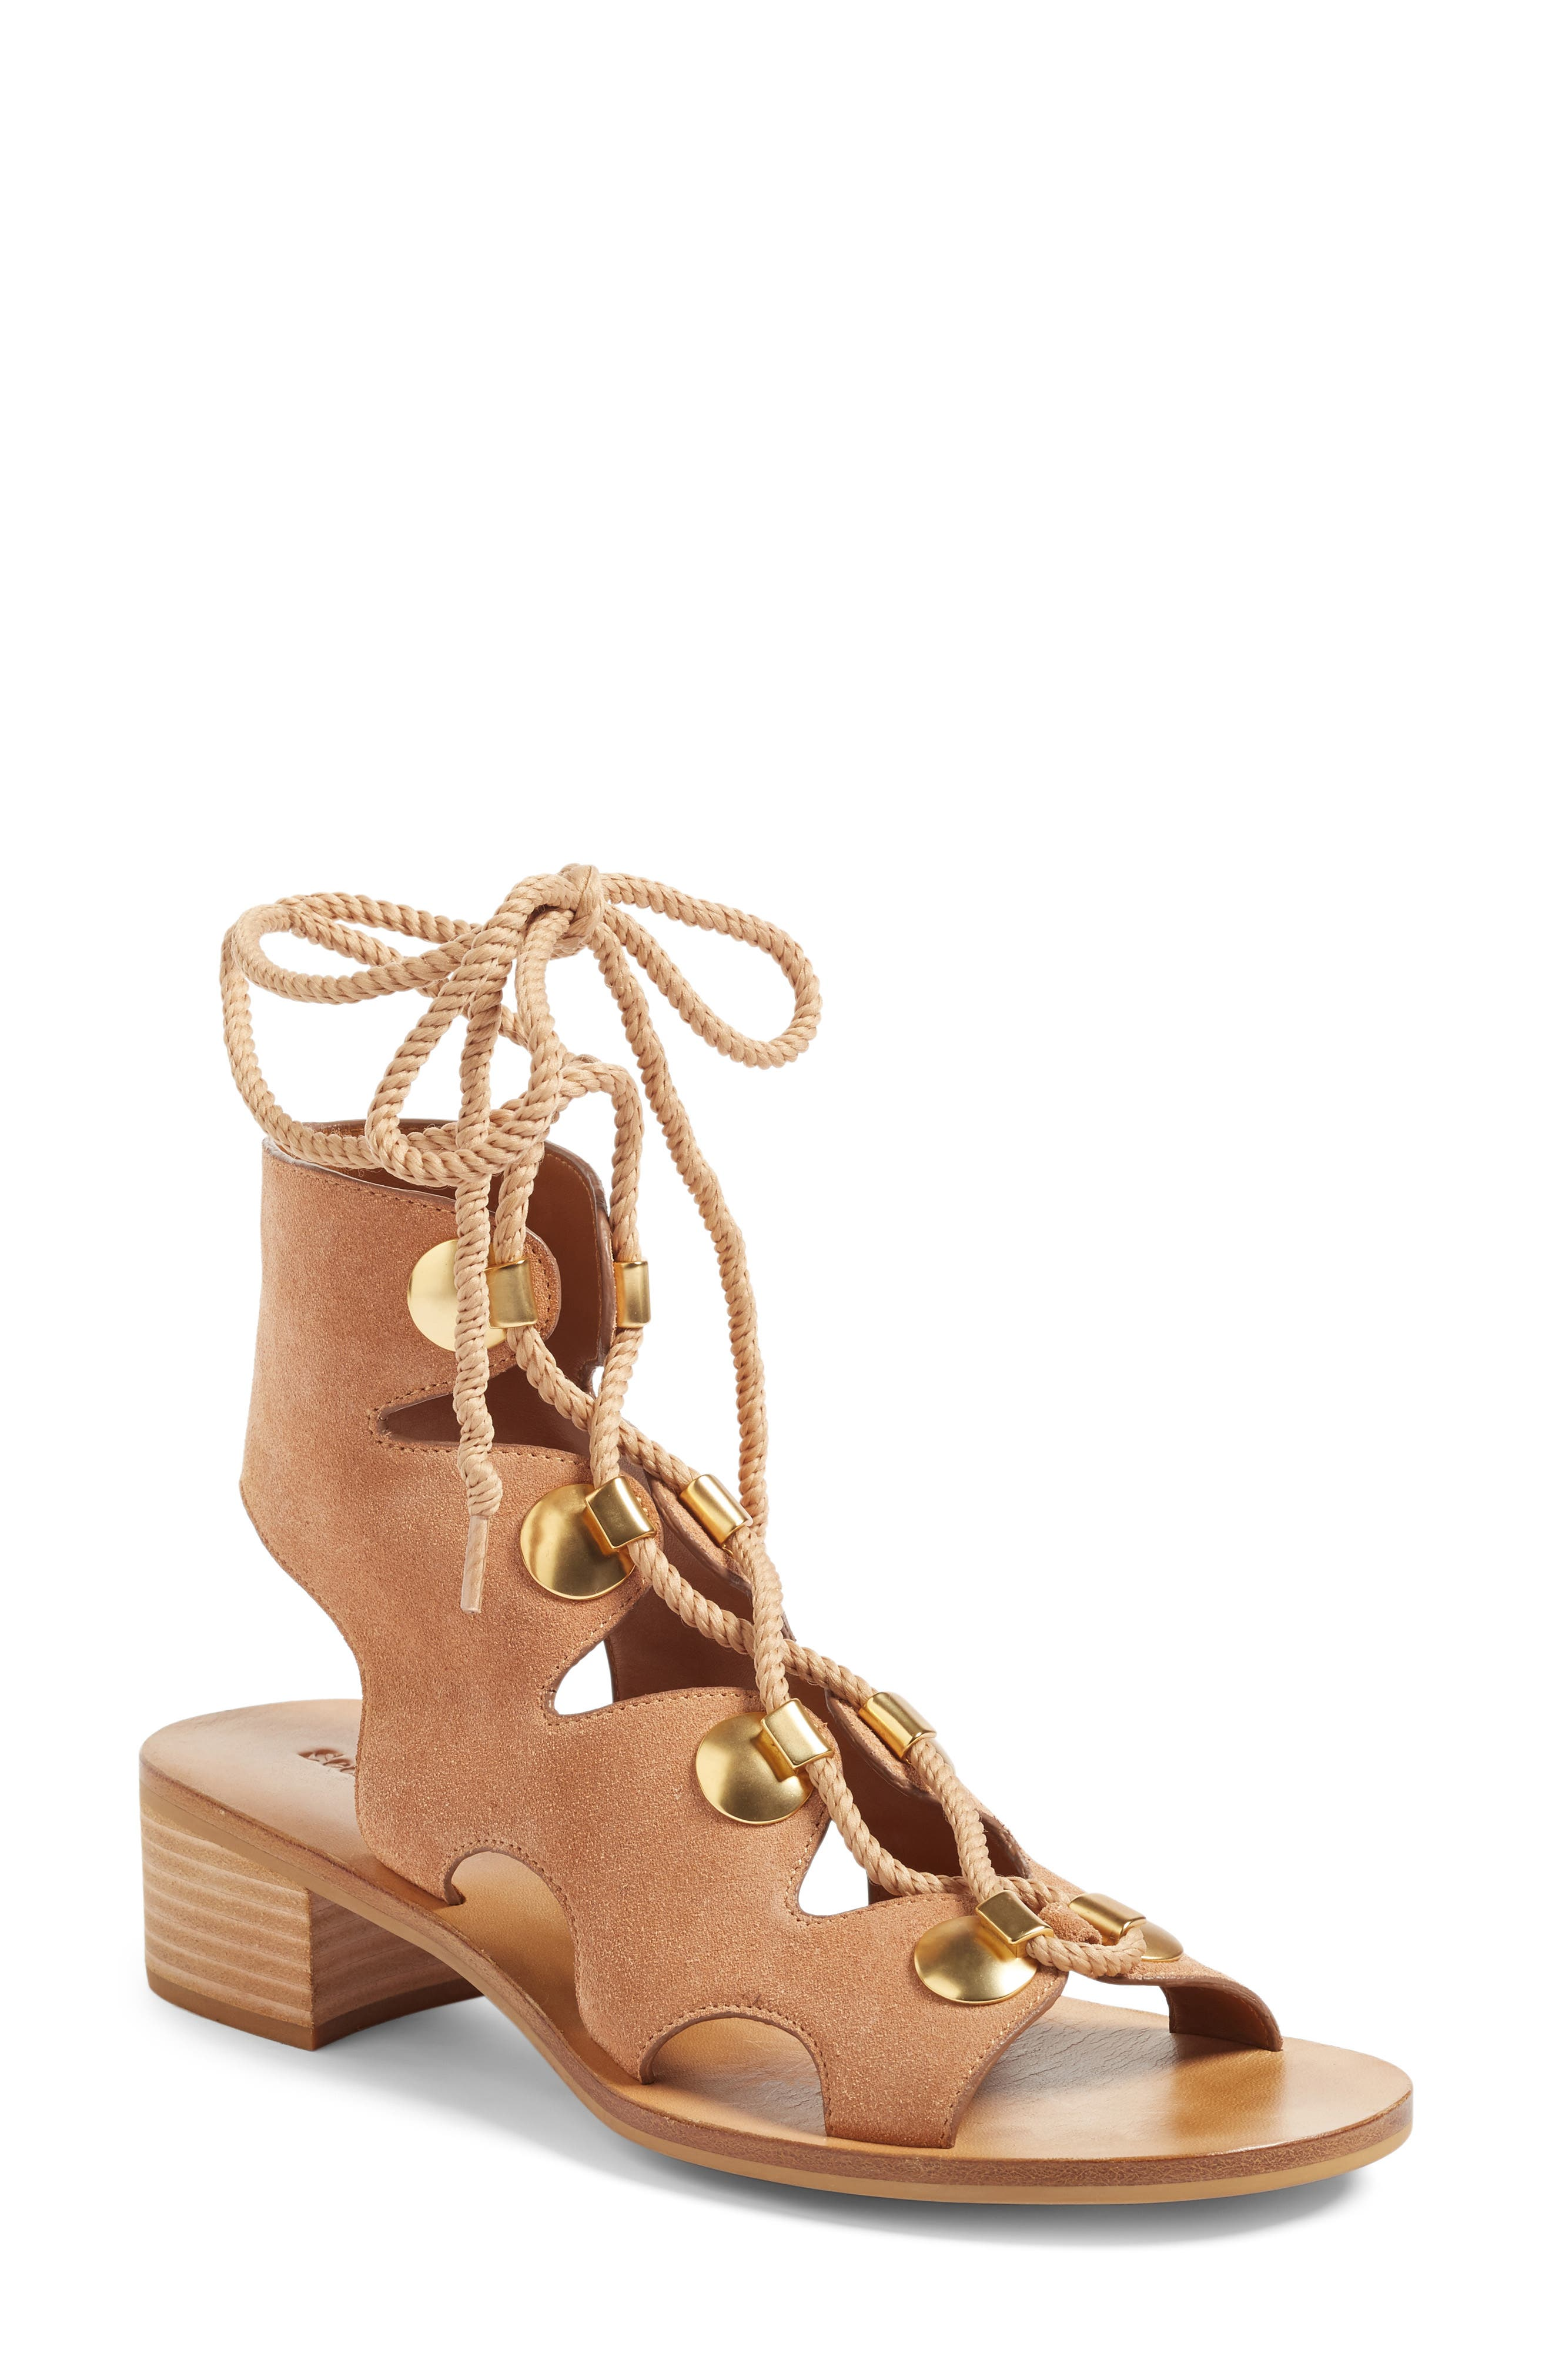 Main Image - See by Chloe Edna Gladiator Sandal (Women)